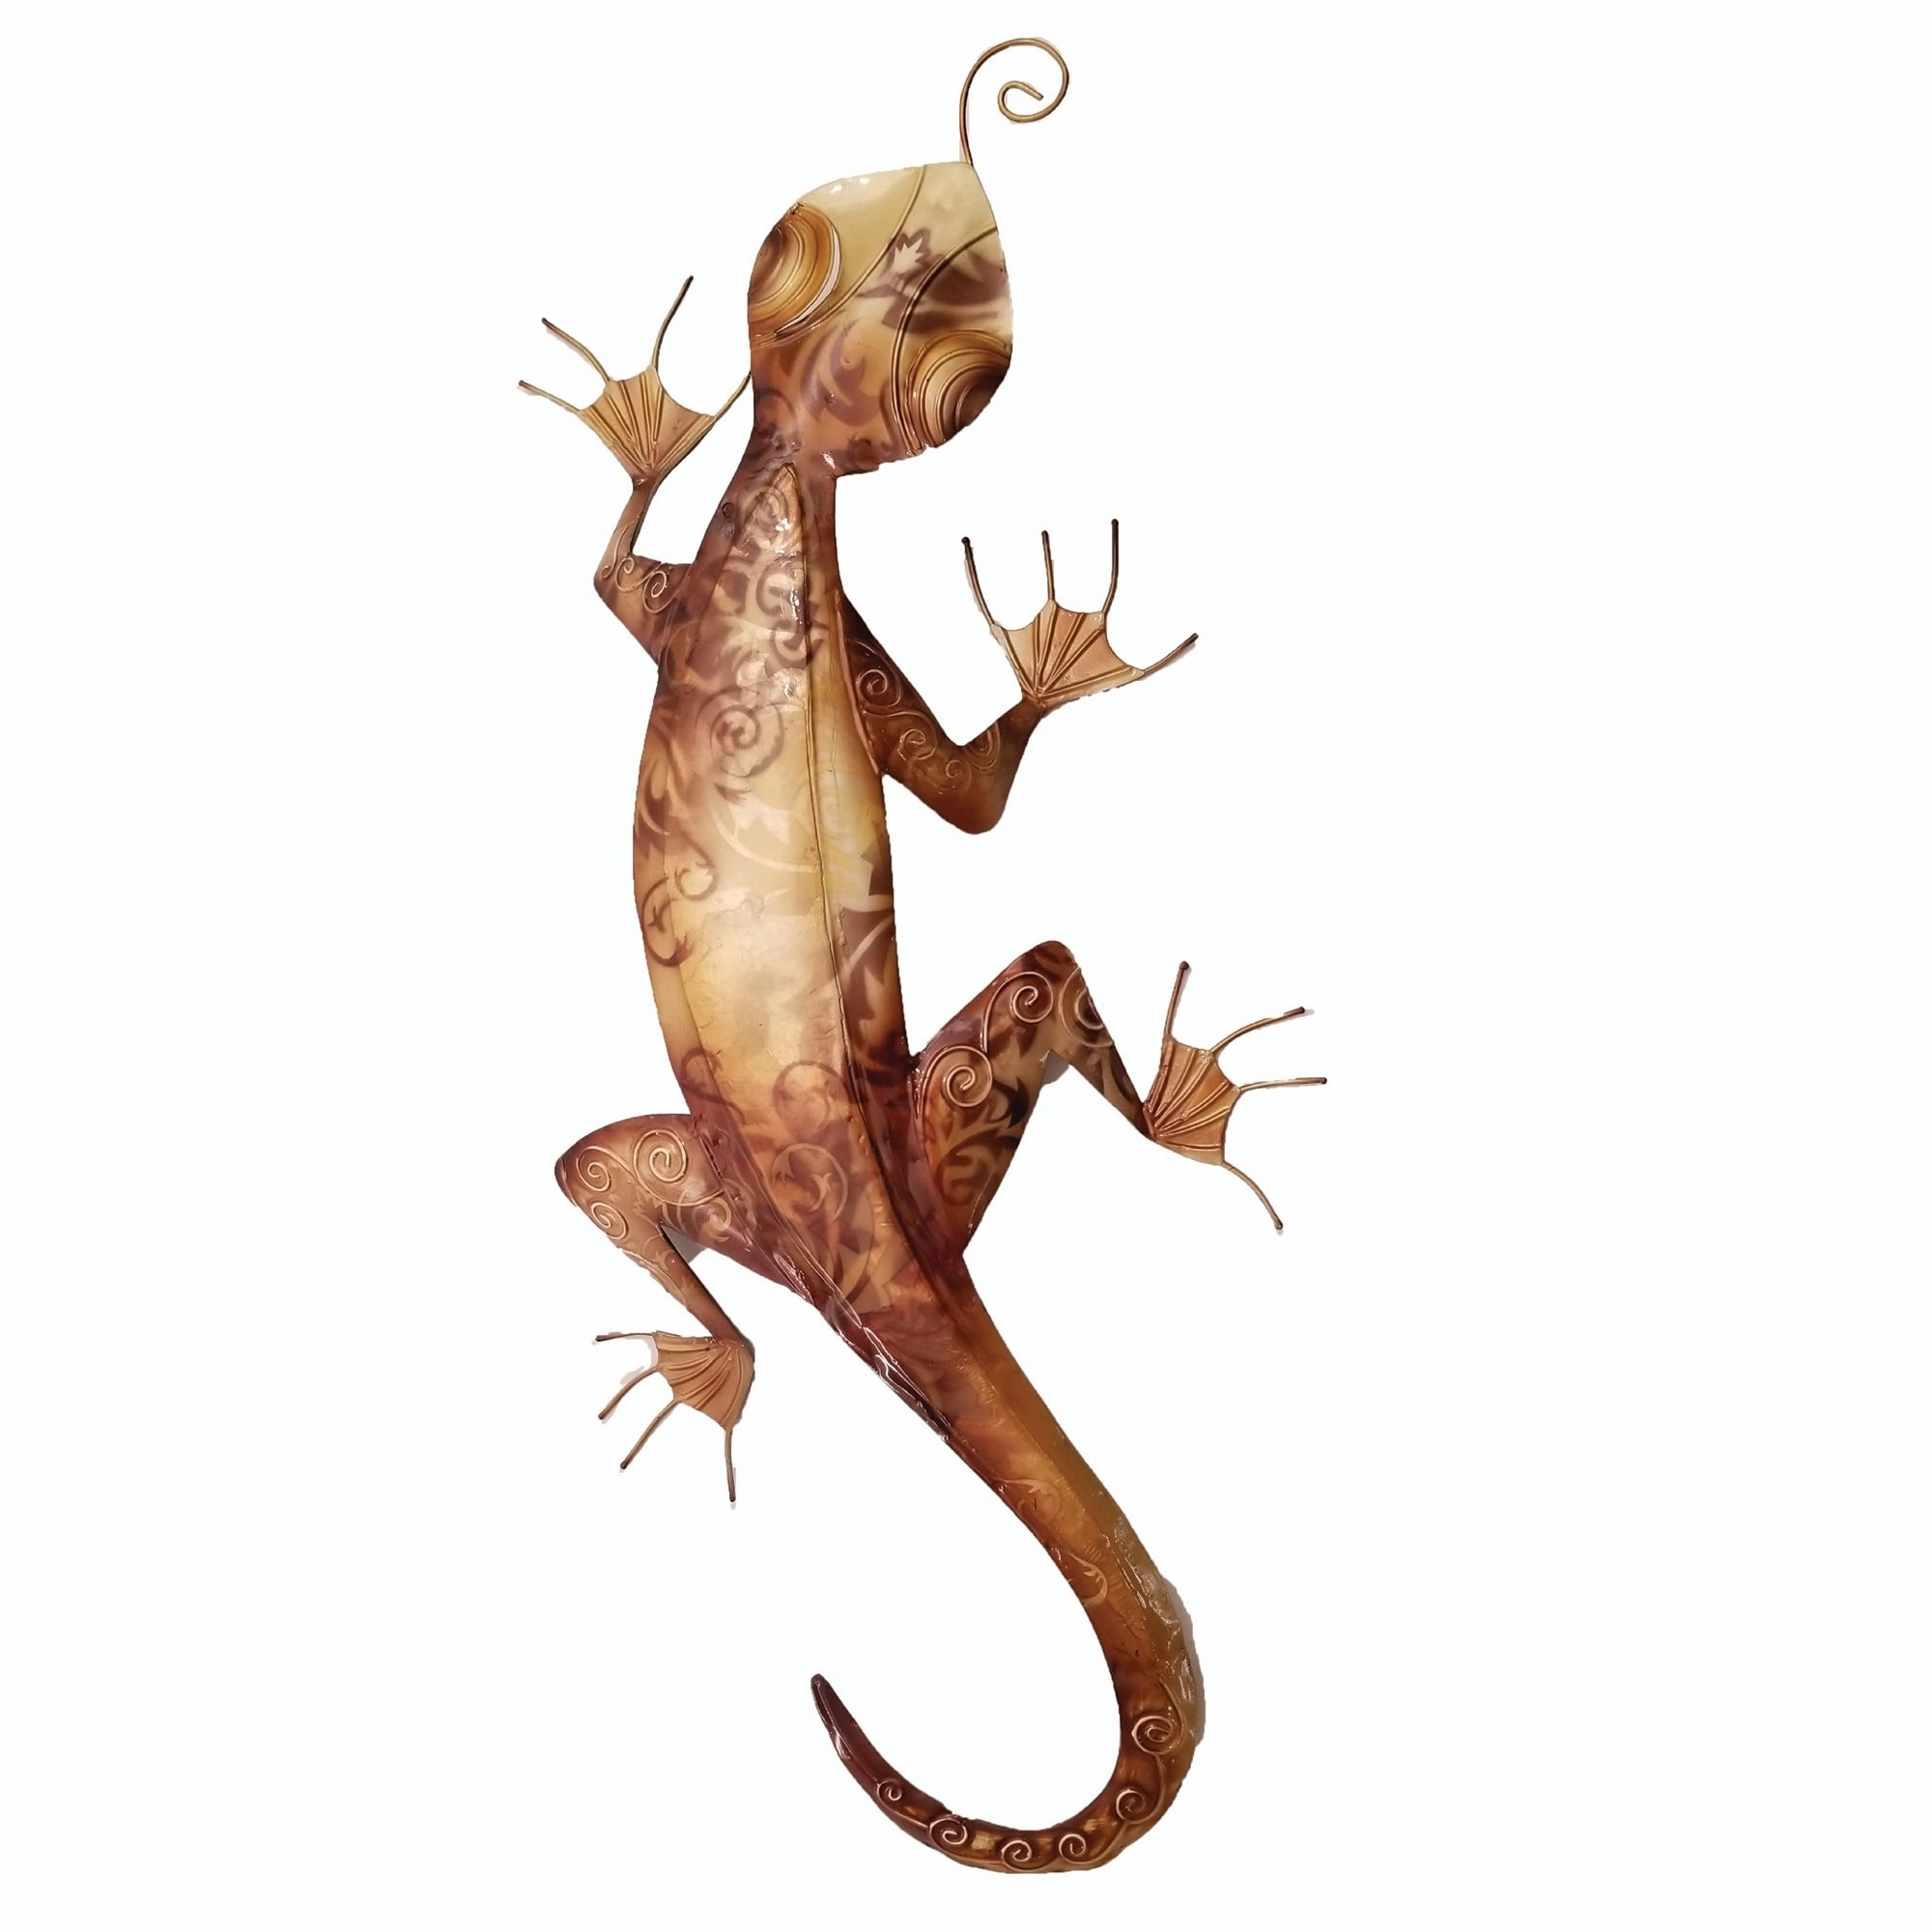 2020 Shop Handmade Gecko Wall Decor Brown – On Sale – Free Shipping On With Regard To Gecko Wall Decor (Gallery 20 of 20)